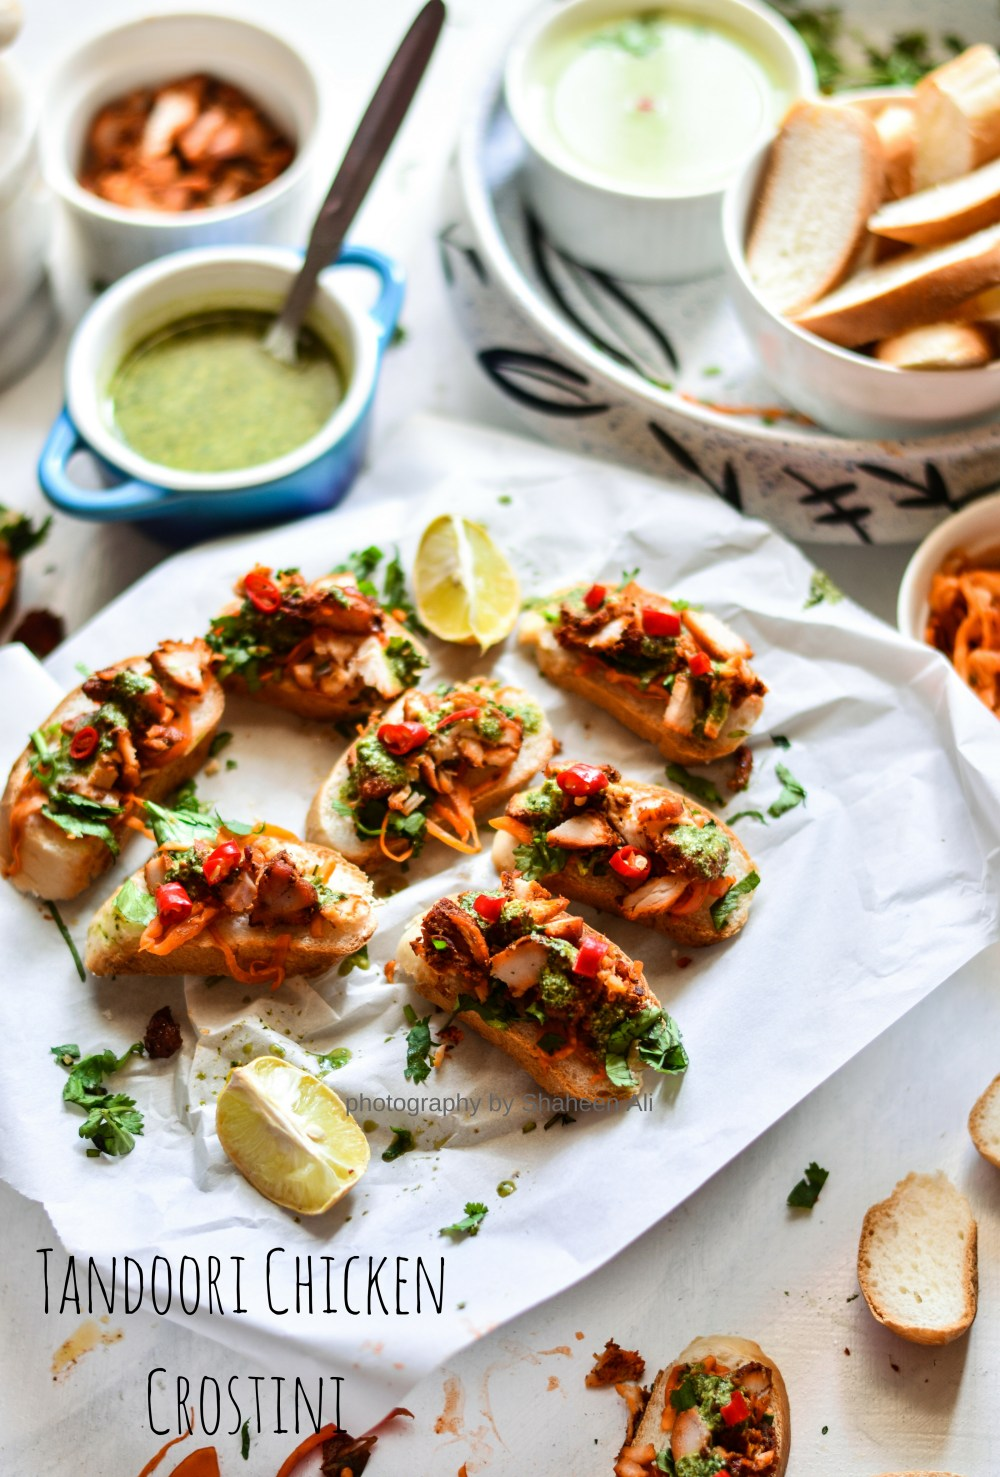 Tandoori Chicken Crostini